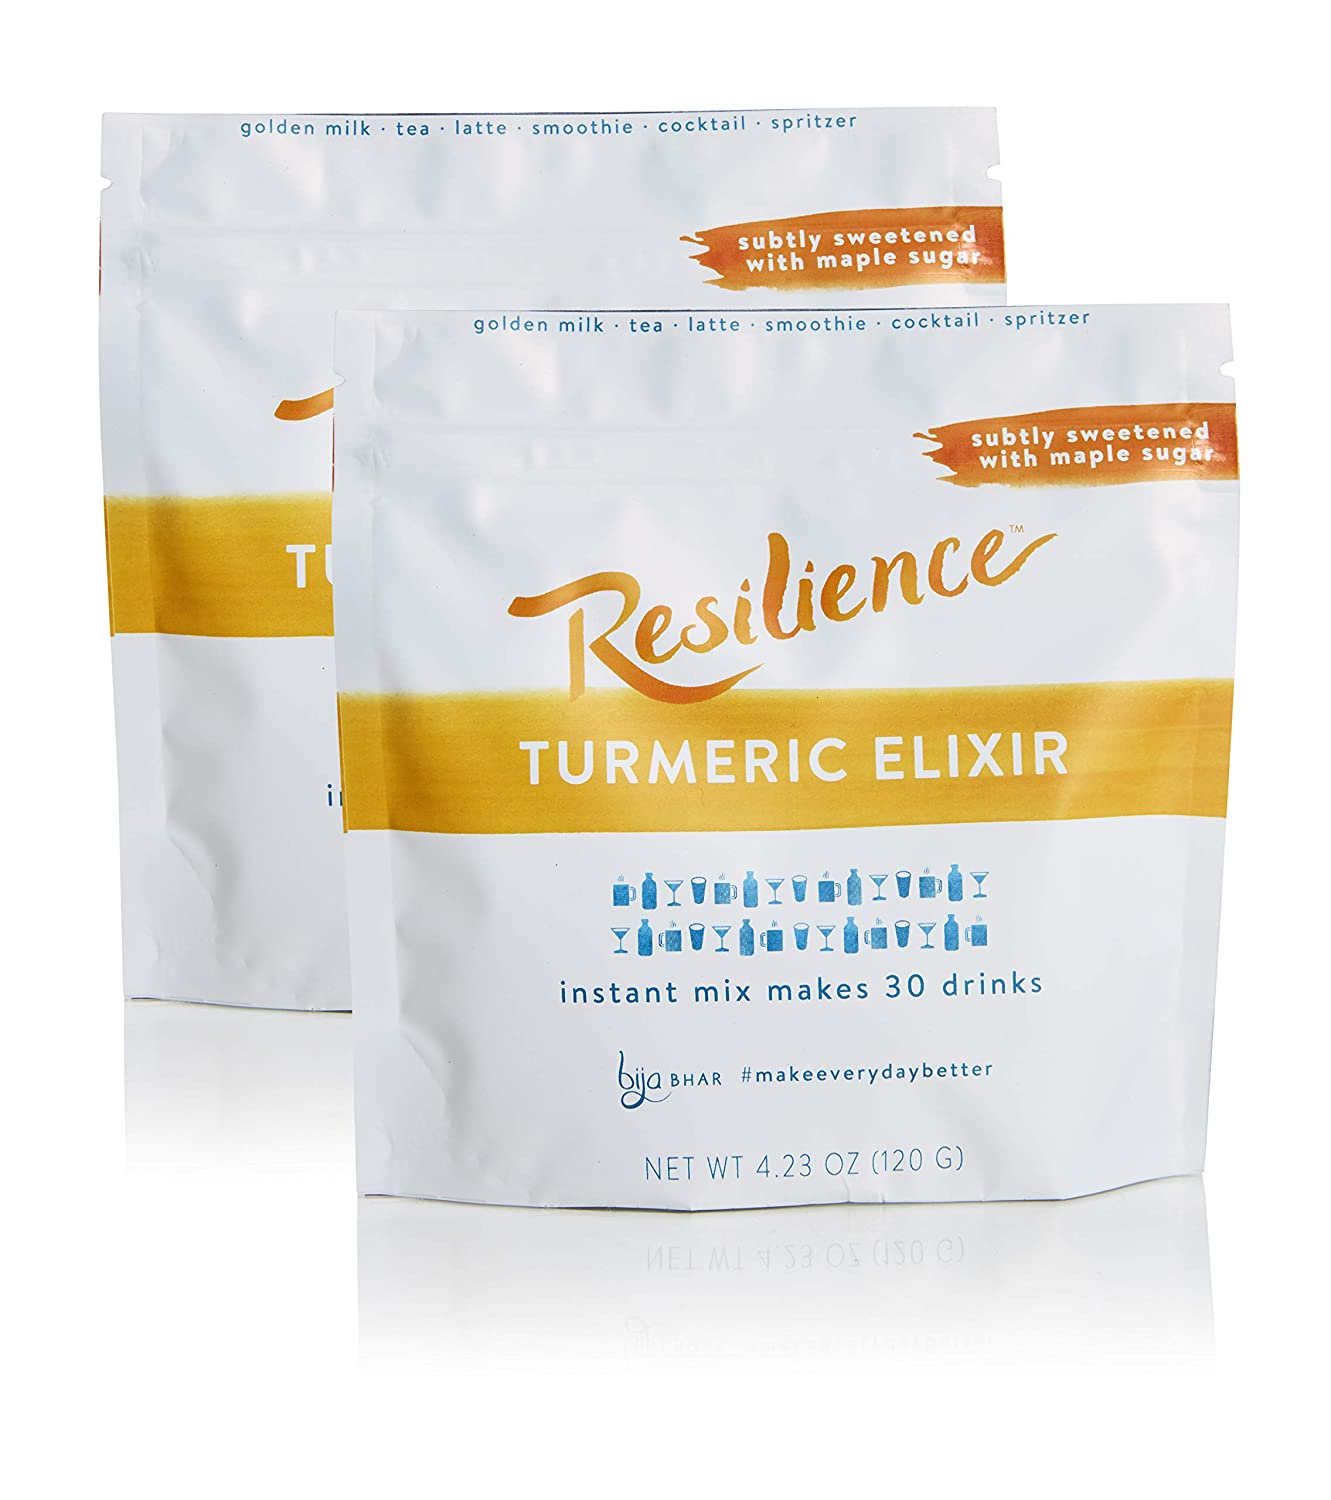 Bija Bhar Resilience Turmeric Elixir, Subtly Sweetened Golden Milk Drink Mix, 30 Servings, 4.32oz Pouch, Pack of 2